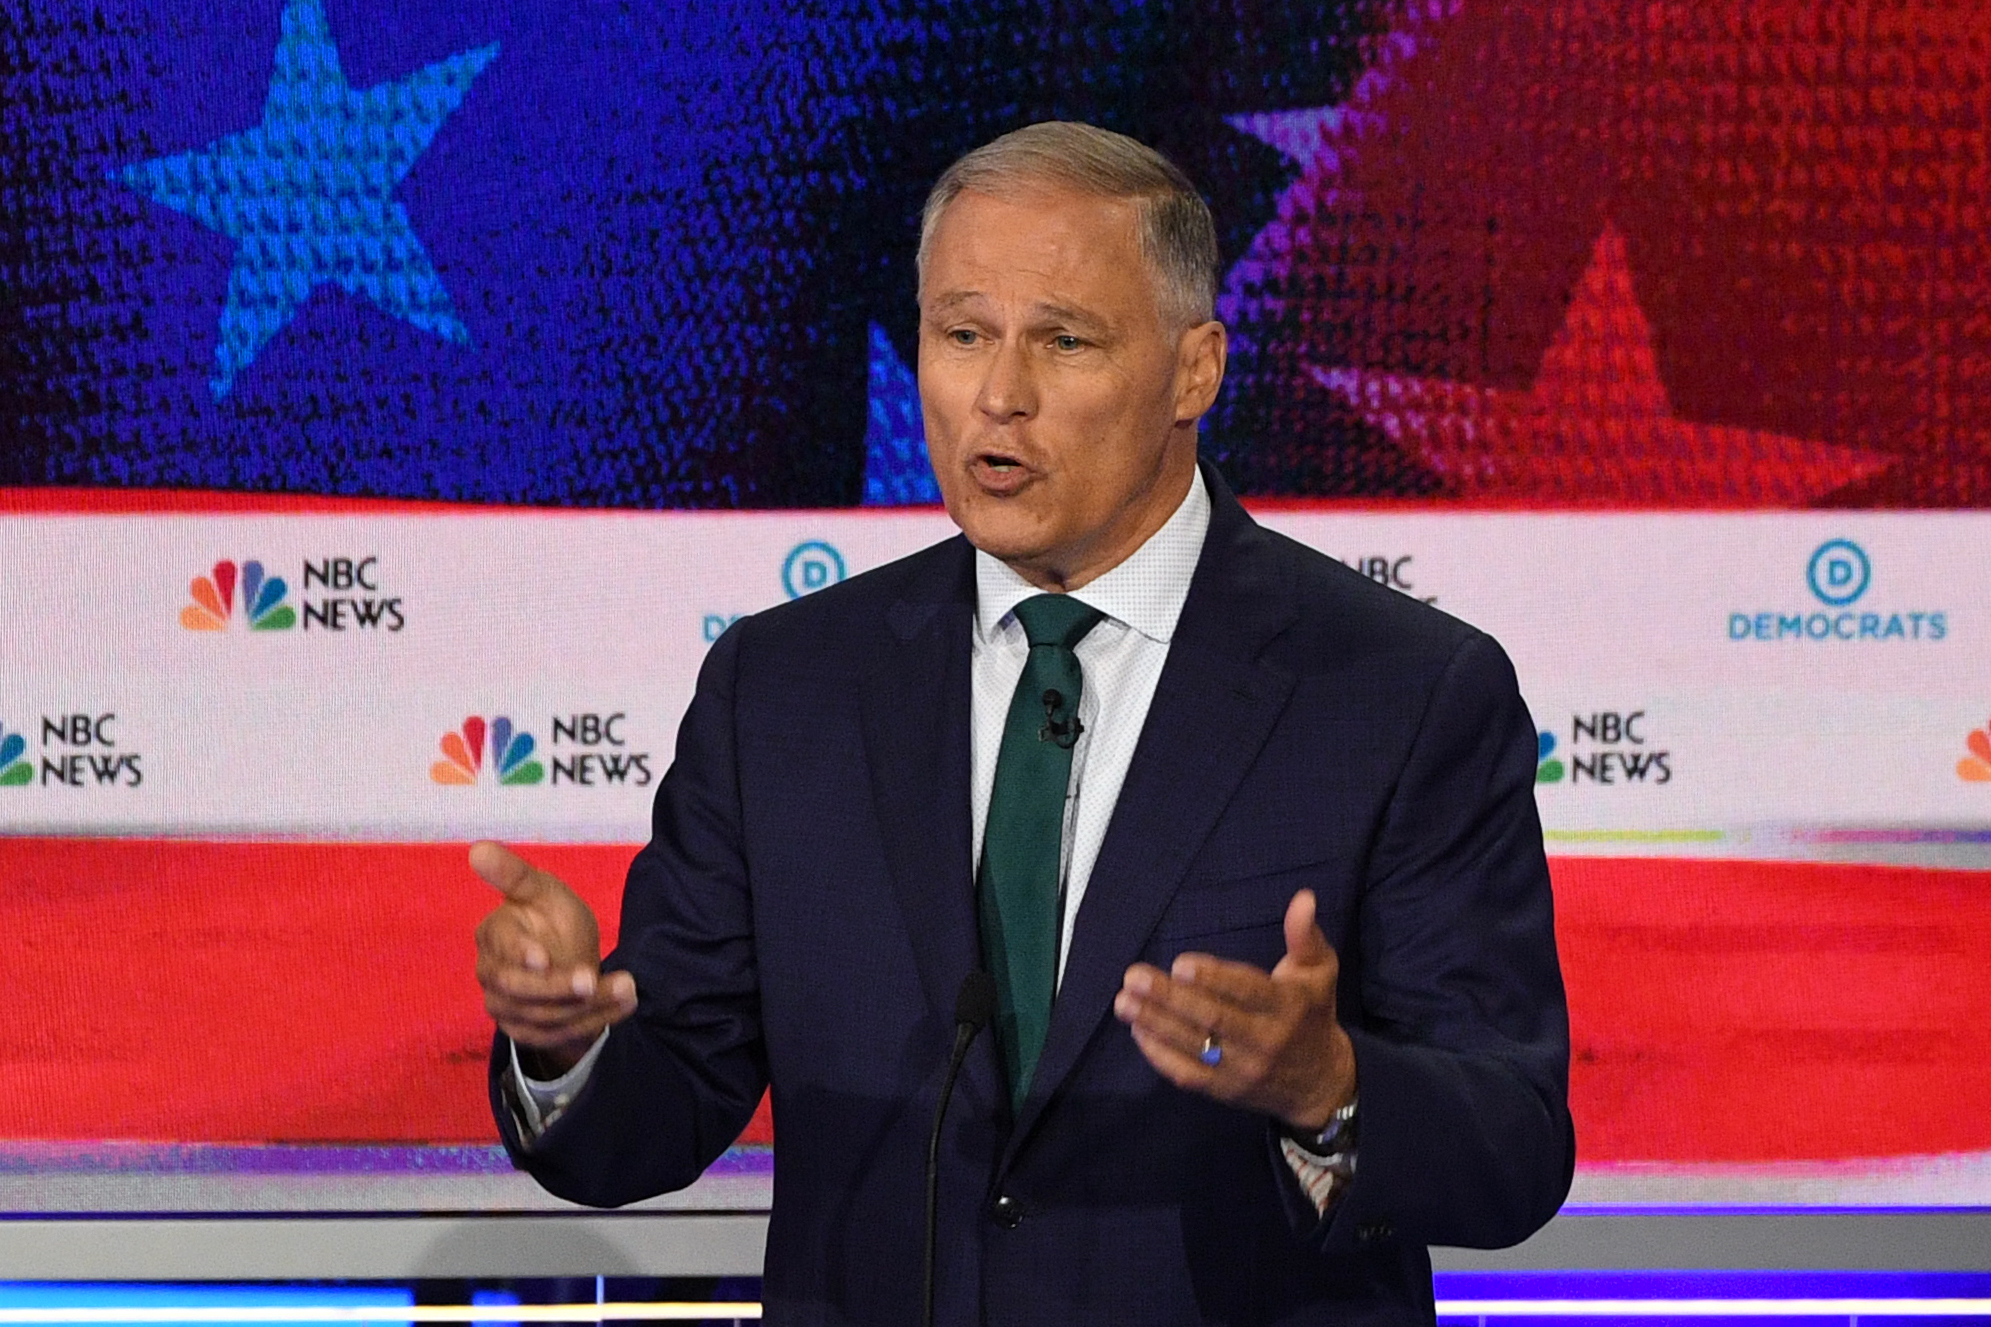 Democratic presidential hopeful Governor of Washington Jay Inslee speaks during the first Democratic primary debate of the 2020 presidential campaign at the Adrienne Arsht Center for the Performing Arts in Miami, June 26, 2019.